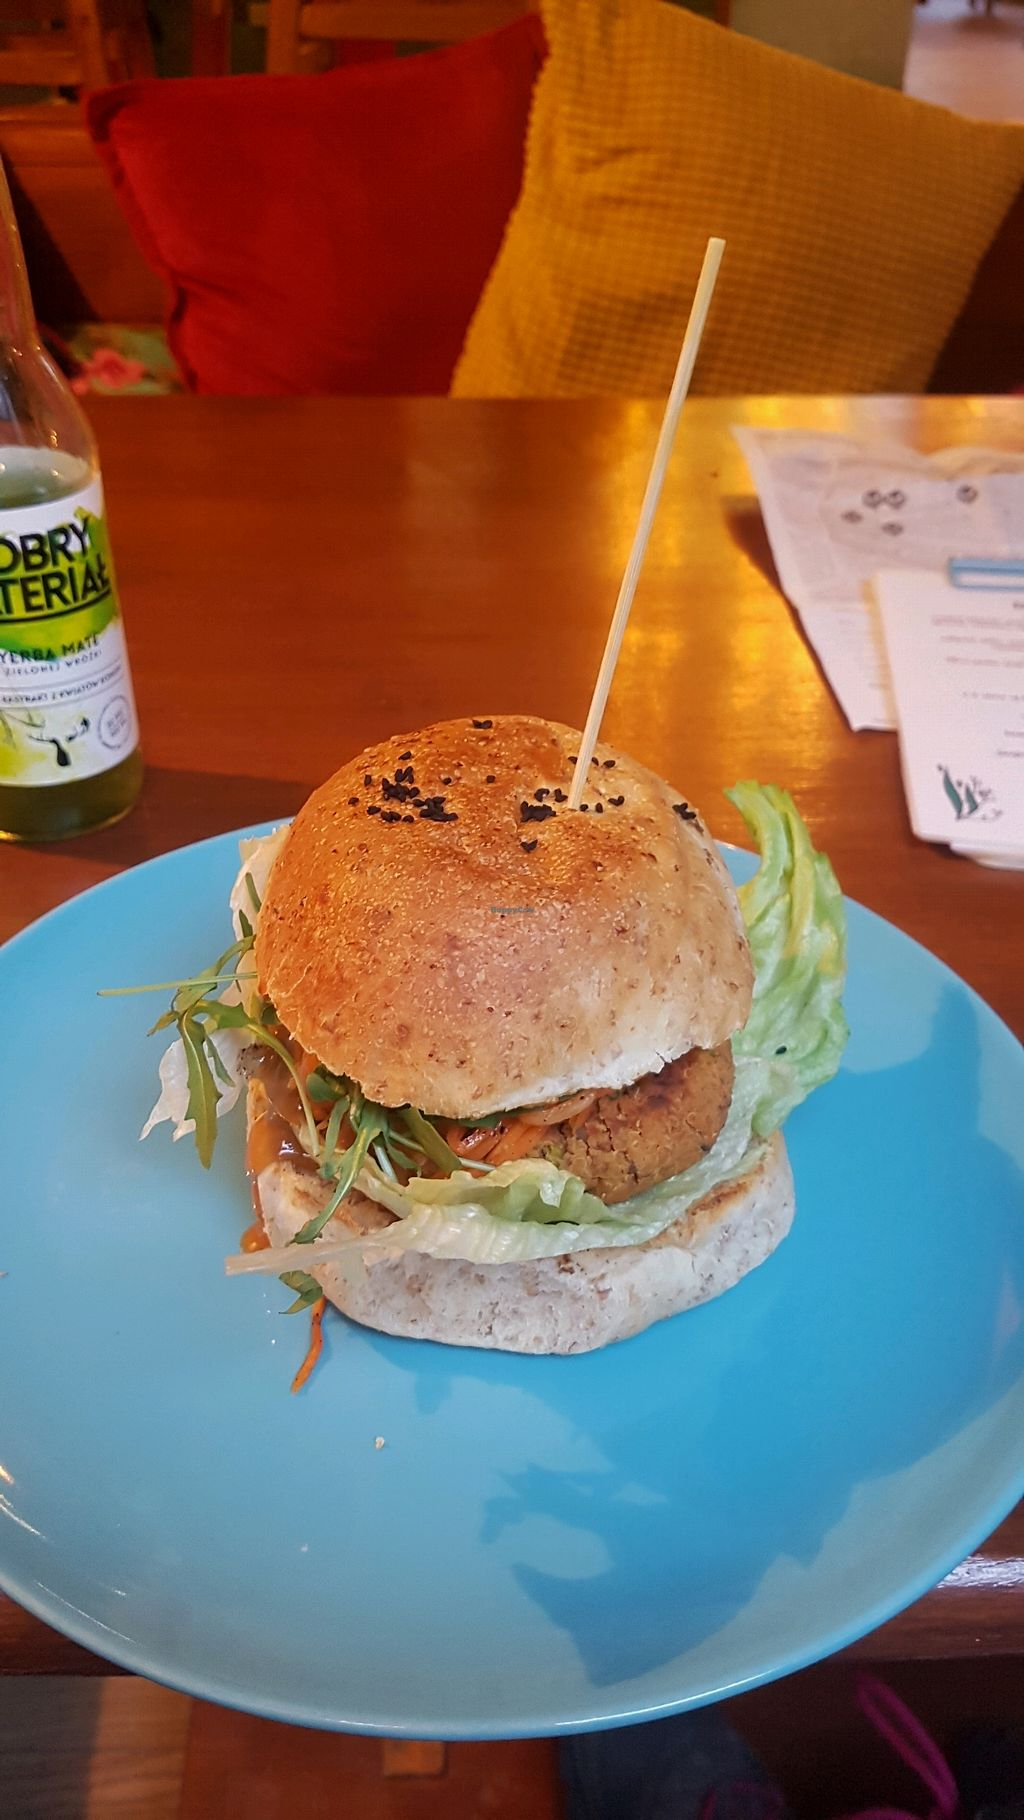 """Photo of Bez Lukru  by <a href=""""/members/profile/JamesCroft"""">JamesCroft</a> <br/>Thai Burger <br/> March 22, 2018  - <a href='/contact/abuse/image/114255/374358'>Report</a>"""